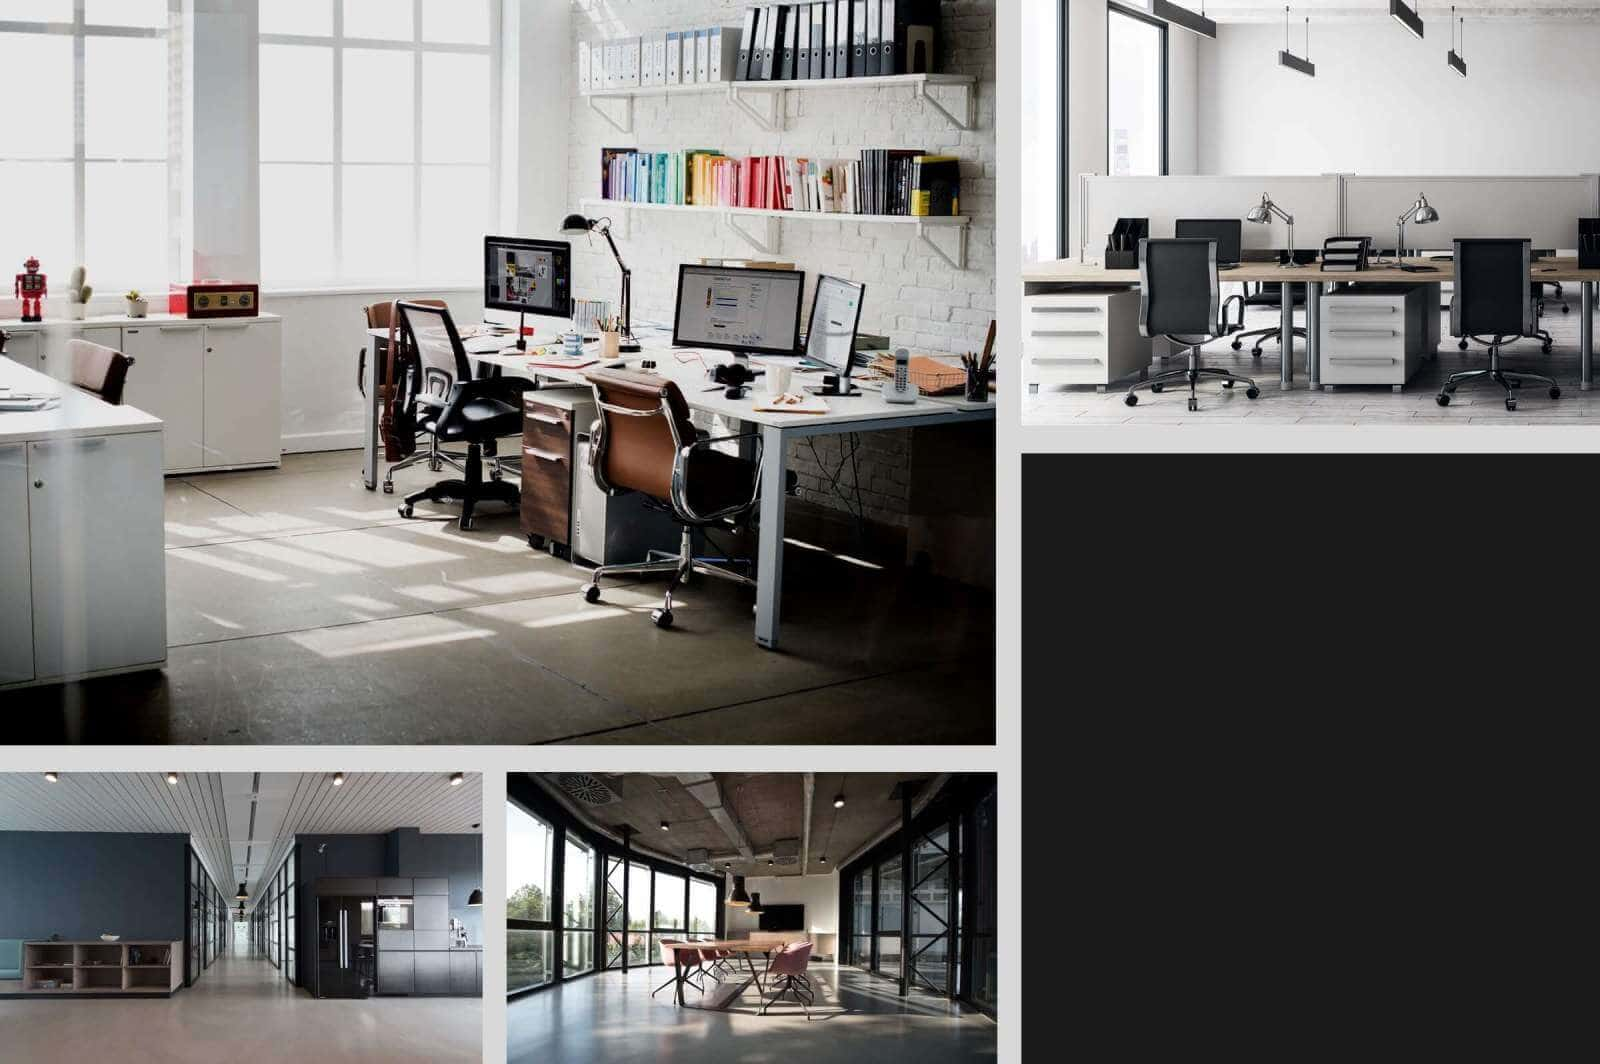 office interior design ideas for a functional workplace